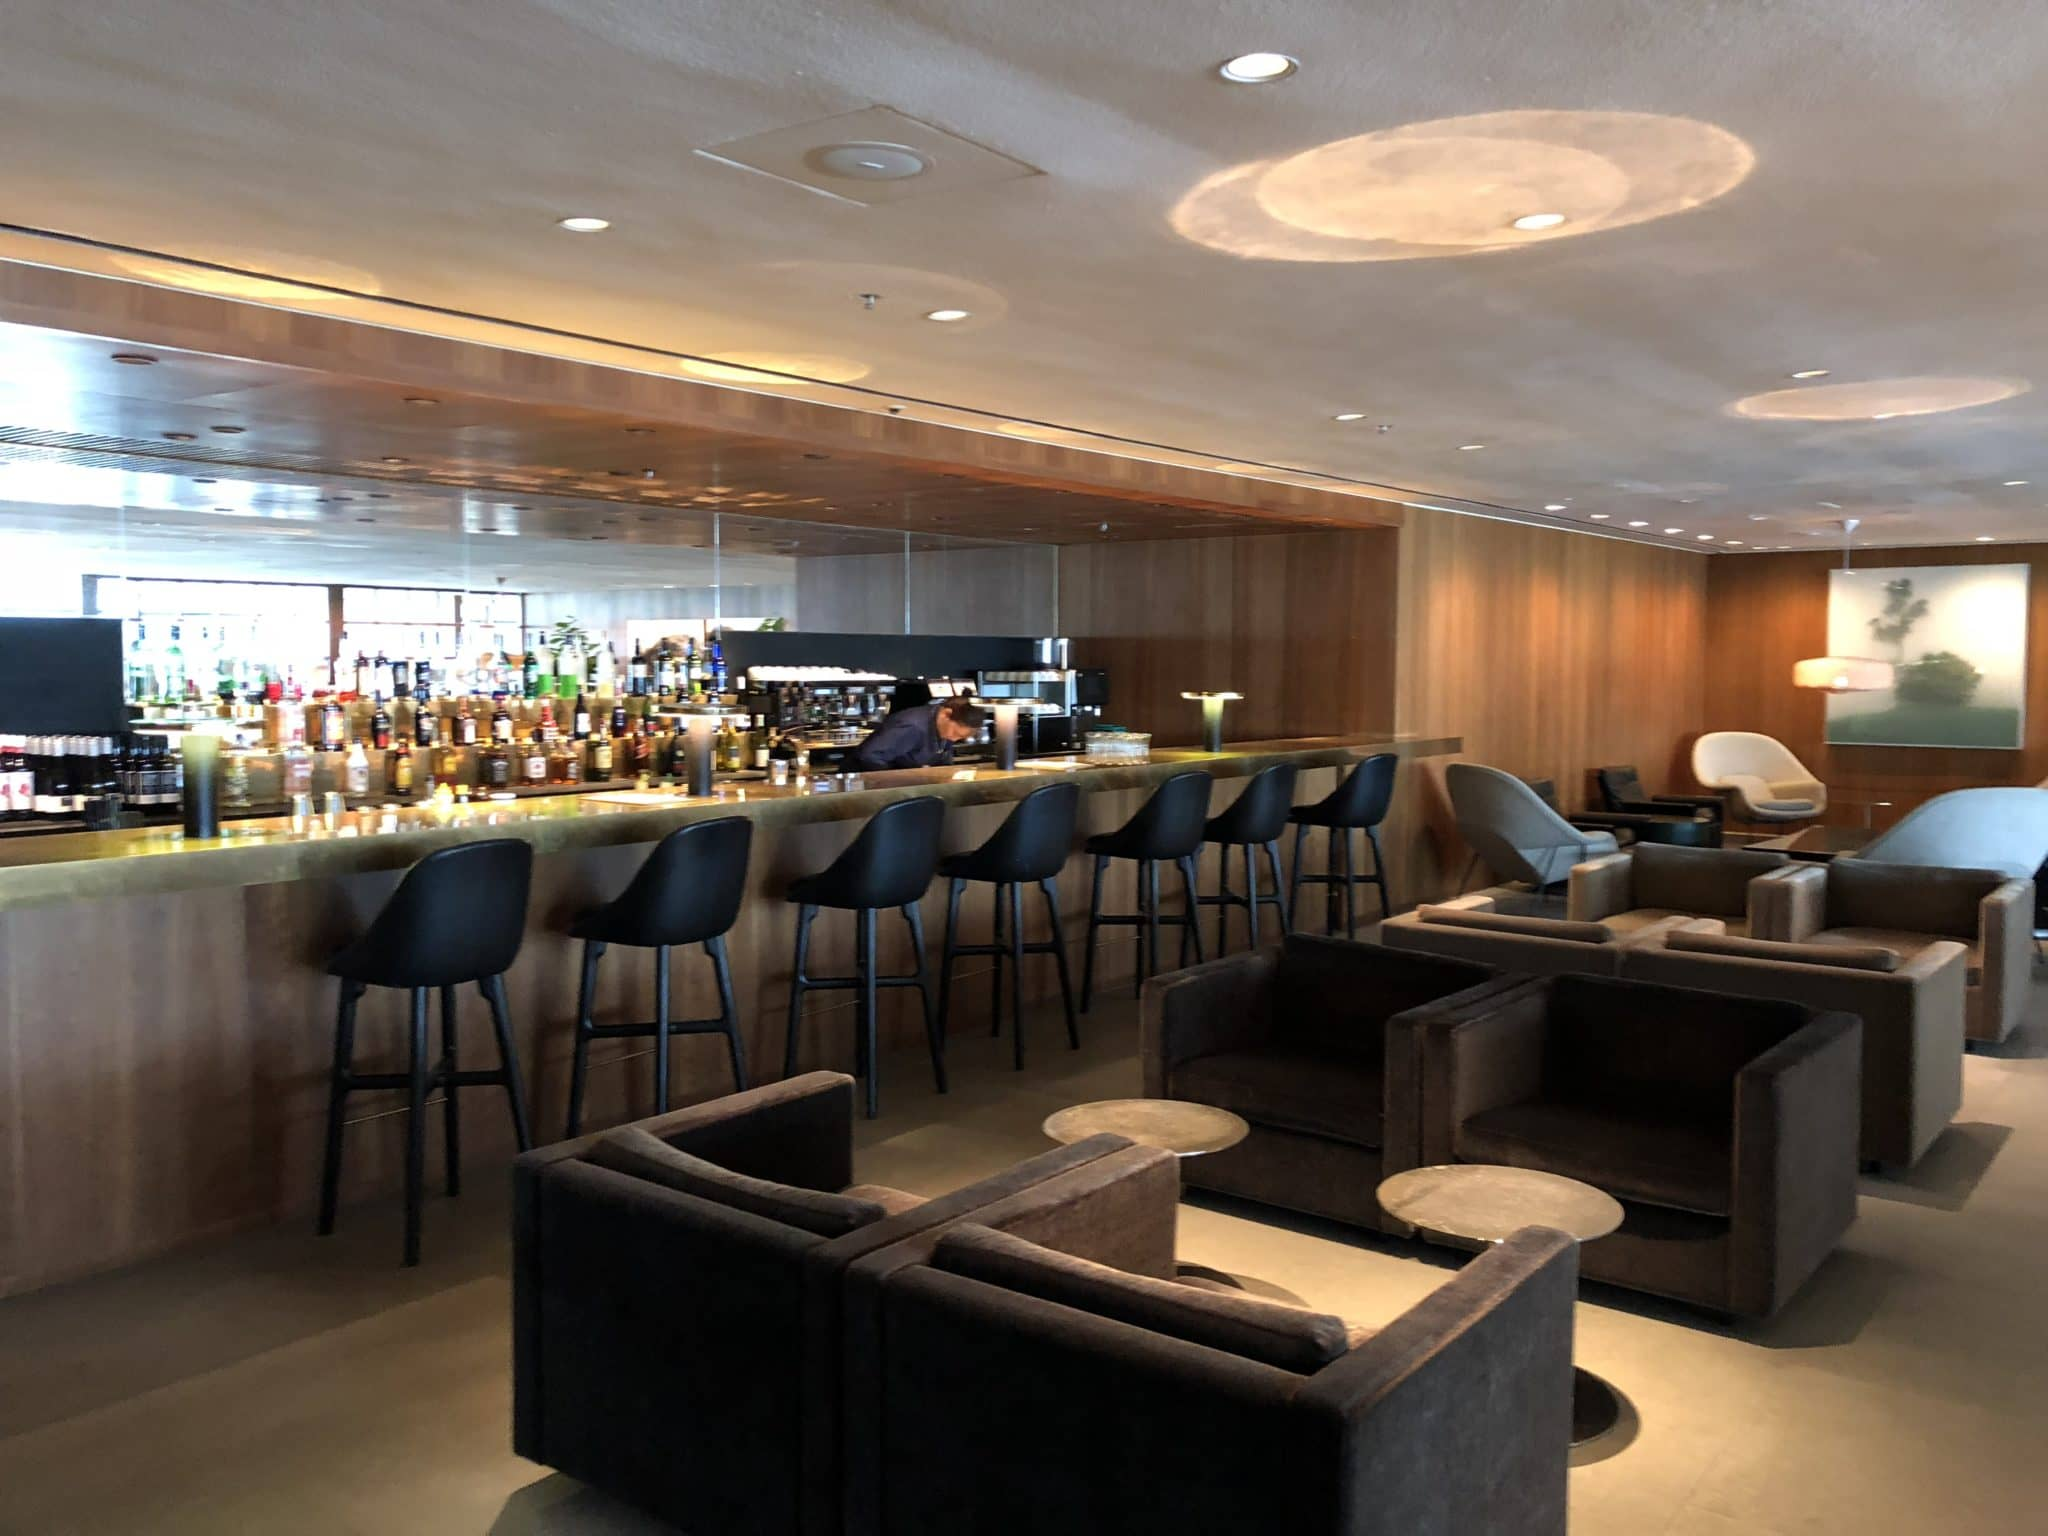 Cathay Pacific Business Class Lounge The Pier Bar der Lounge